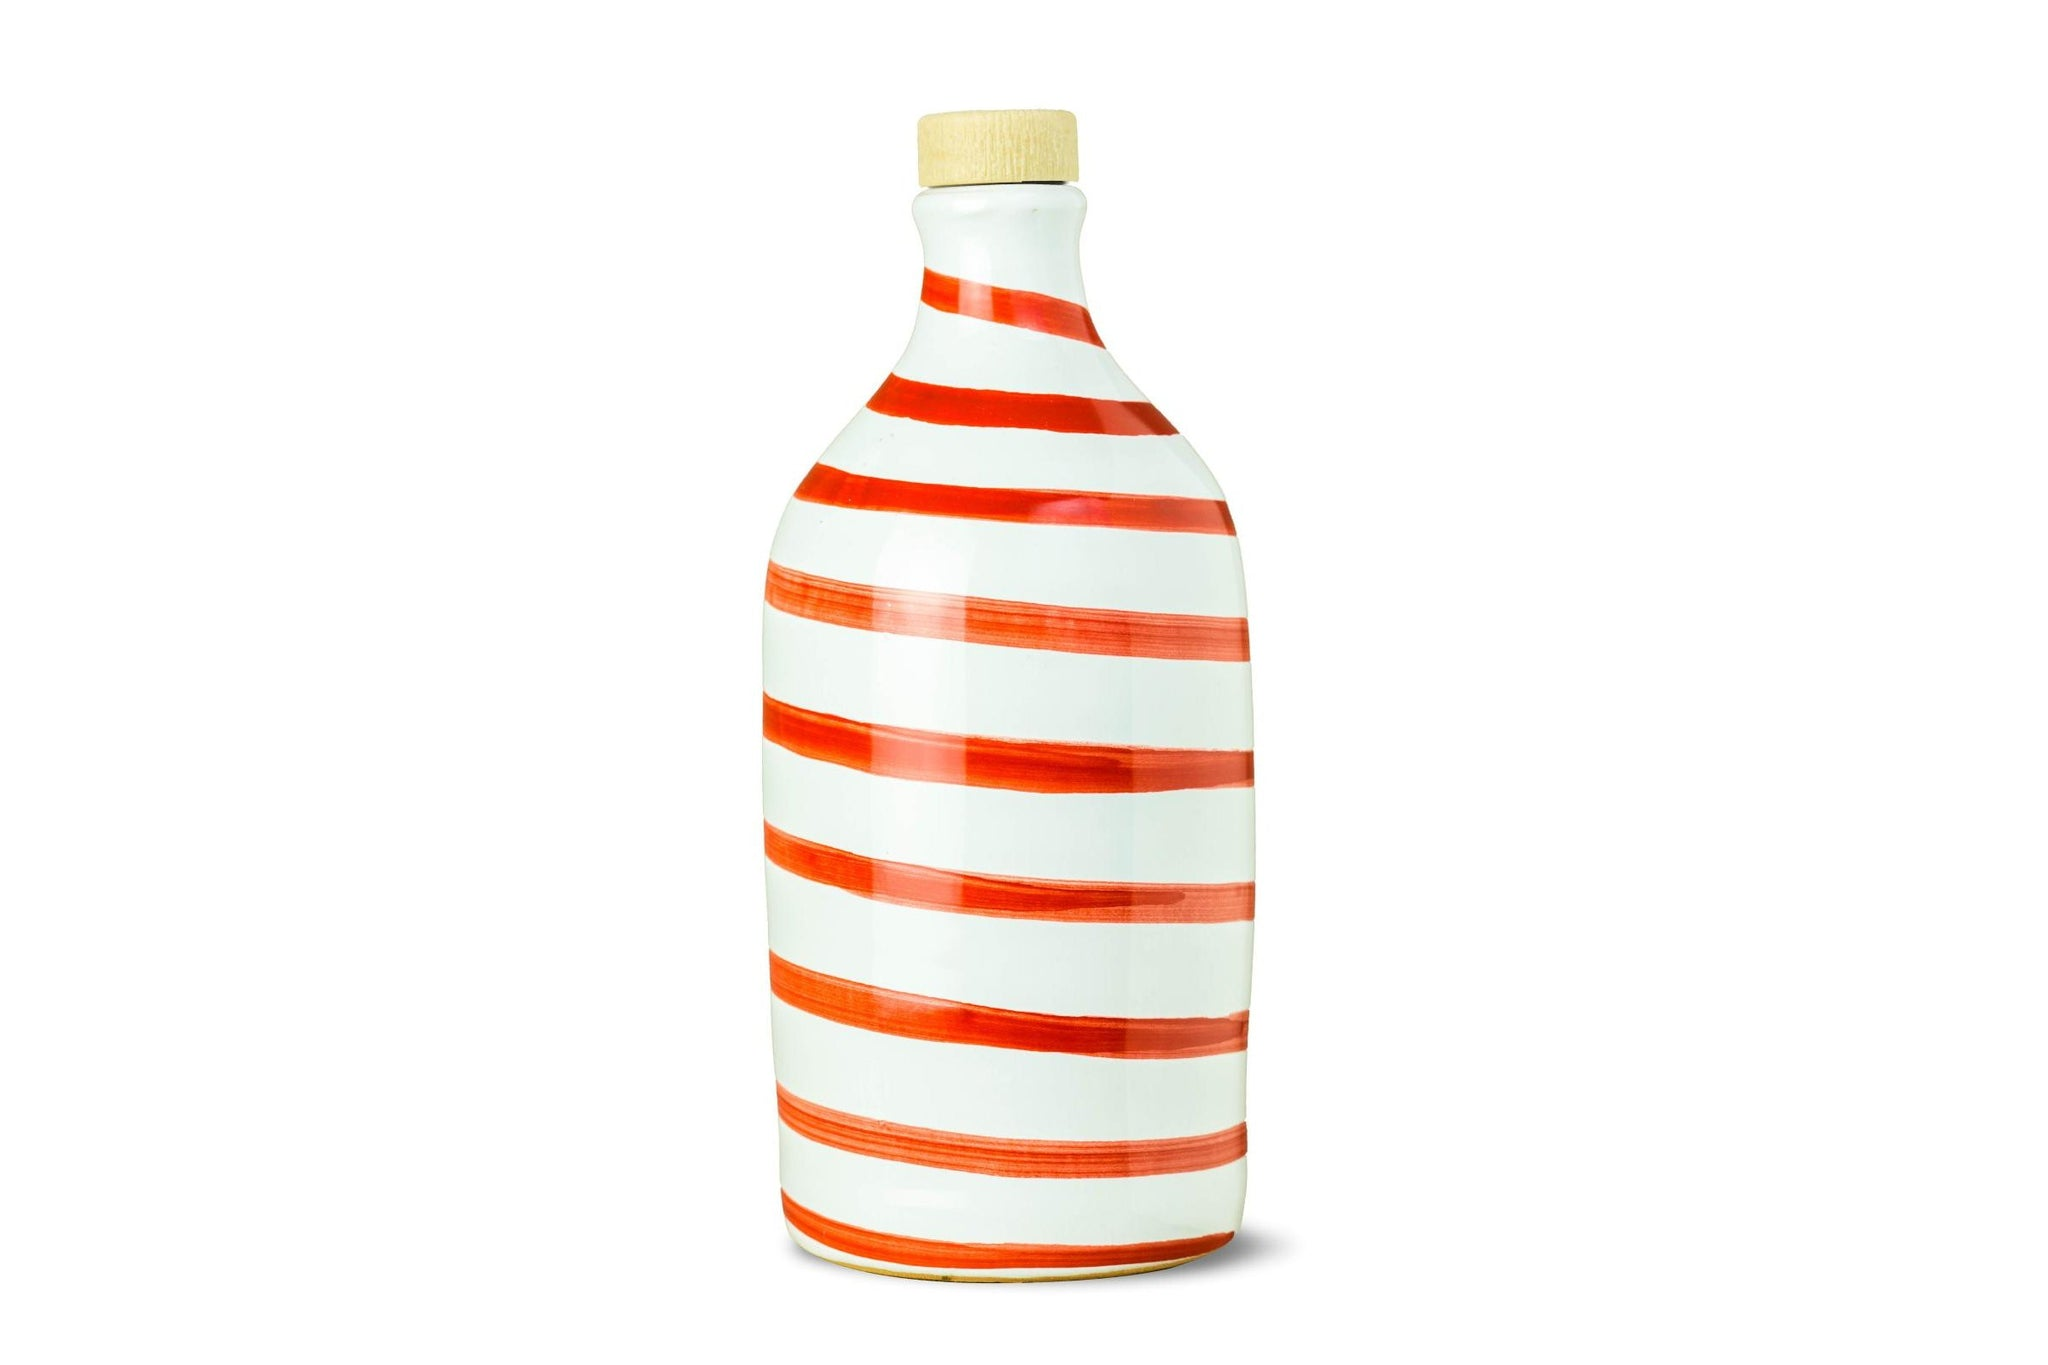 Frantoio Muraglia Extra Virgin Olive Oil in Red Stripes handmade ceramic bottle - Buy on the Red Beetle Shop - Buy Authentic Italian Food on the Red Beetle Shop